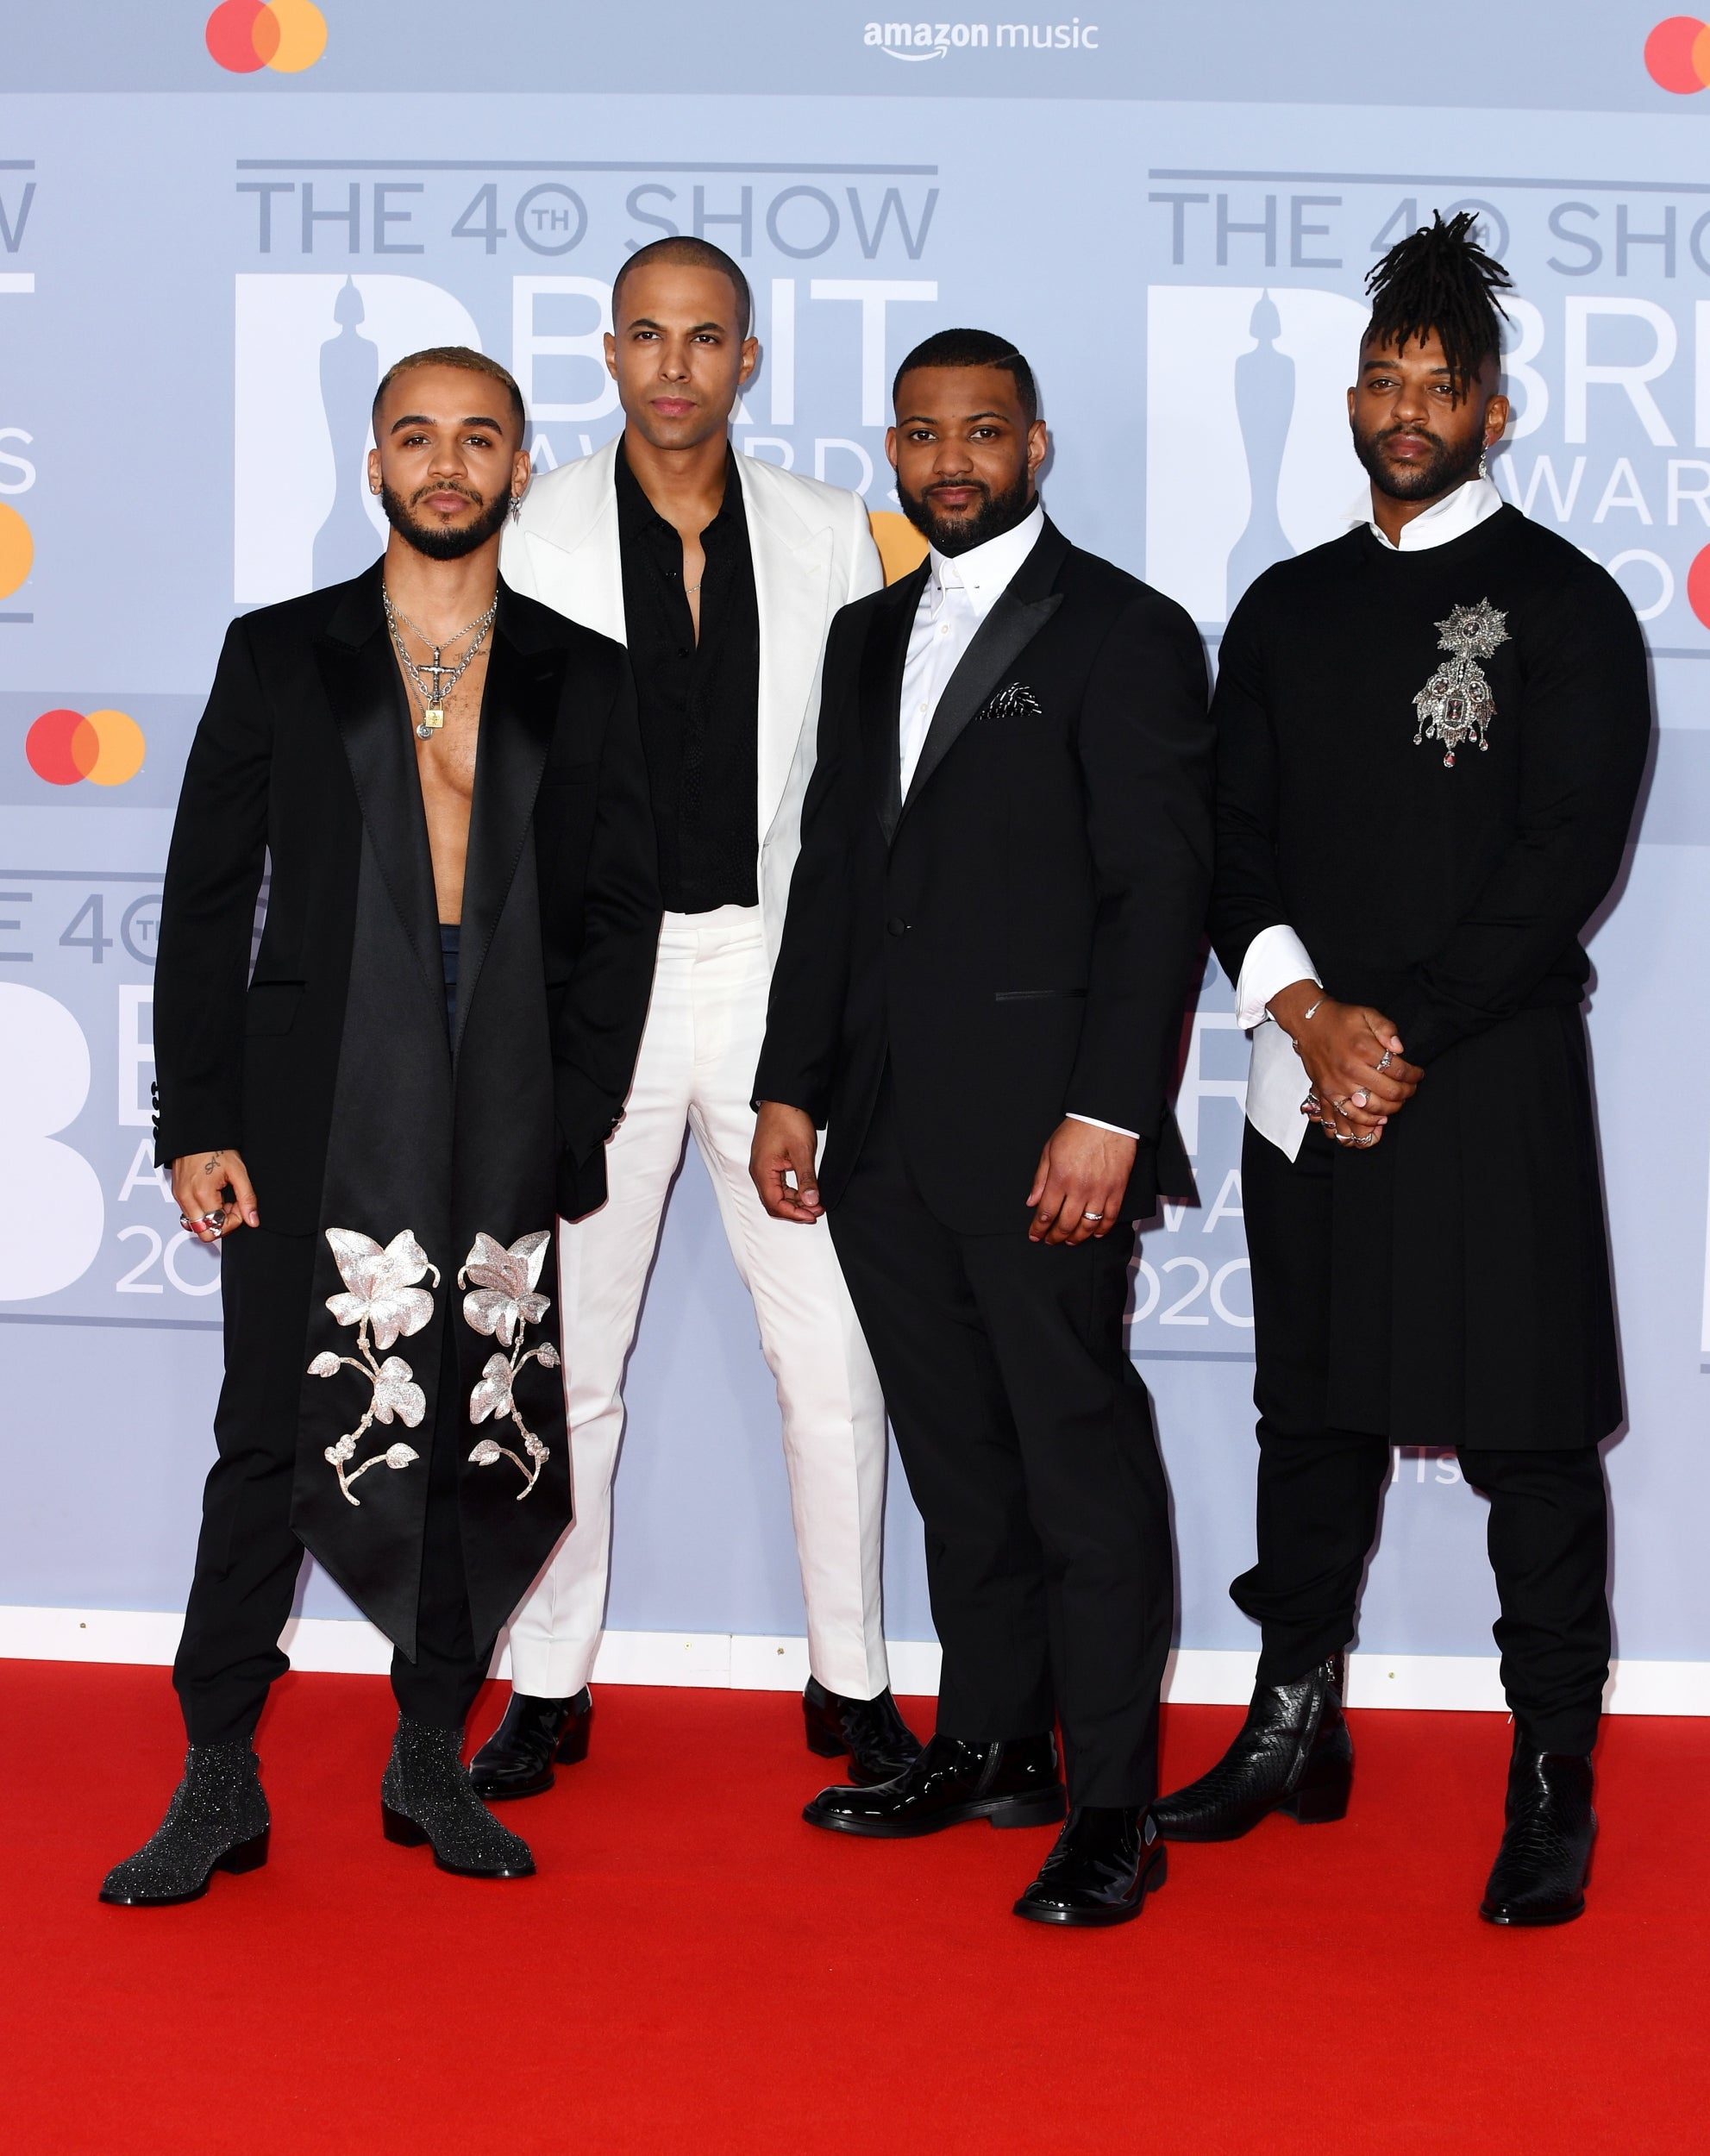 Aston Merrygold, Marvin Humes, JB Gill and Oritse Williams of JLS